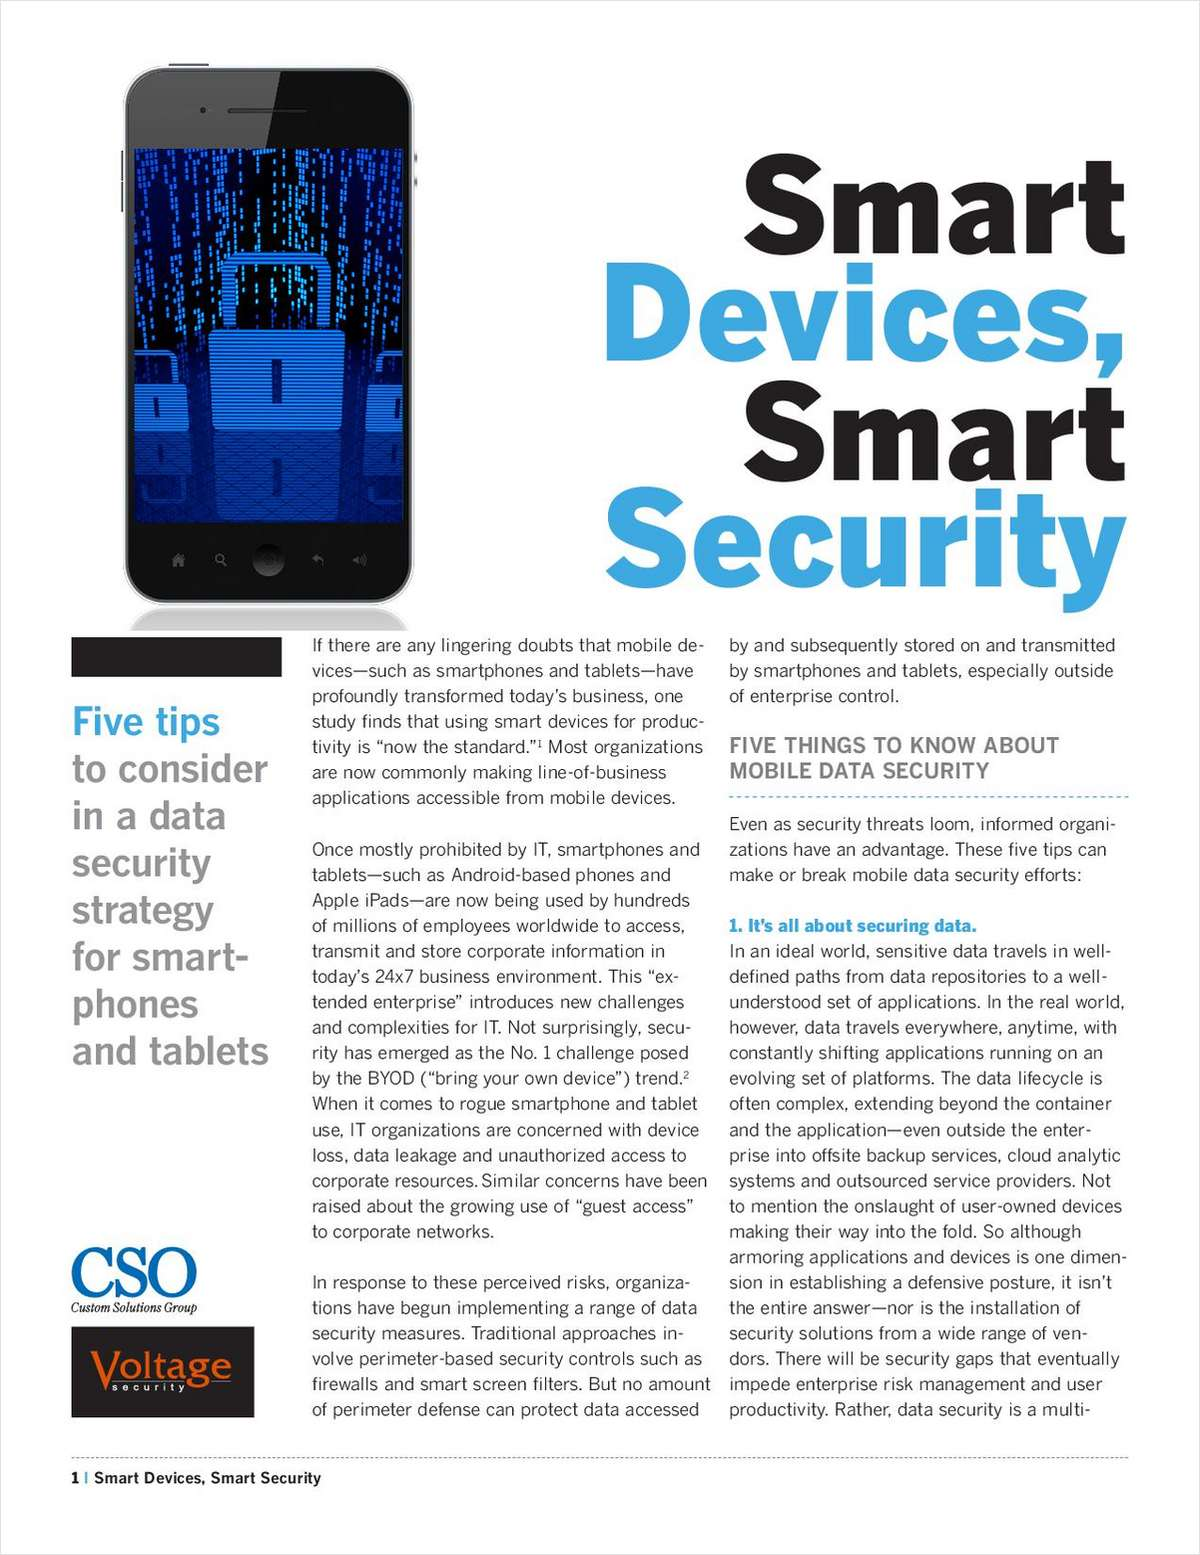 For Data Security Professionals  - Smart Devices, Smart Security